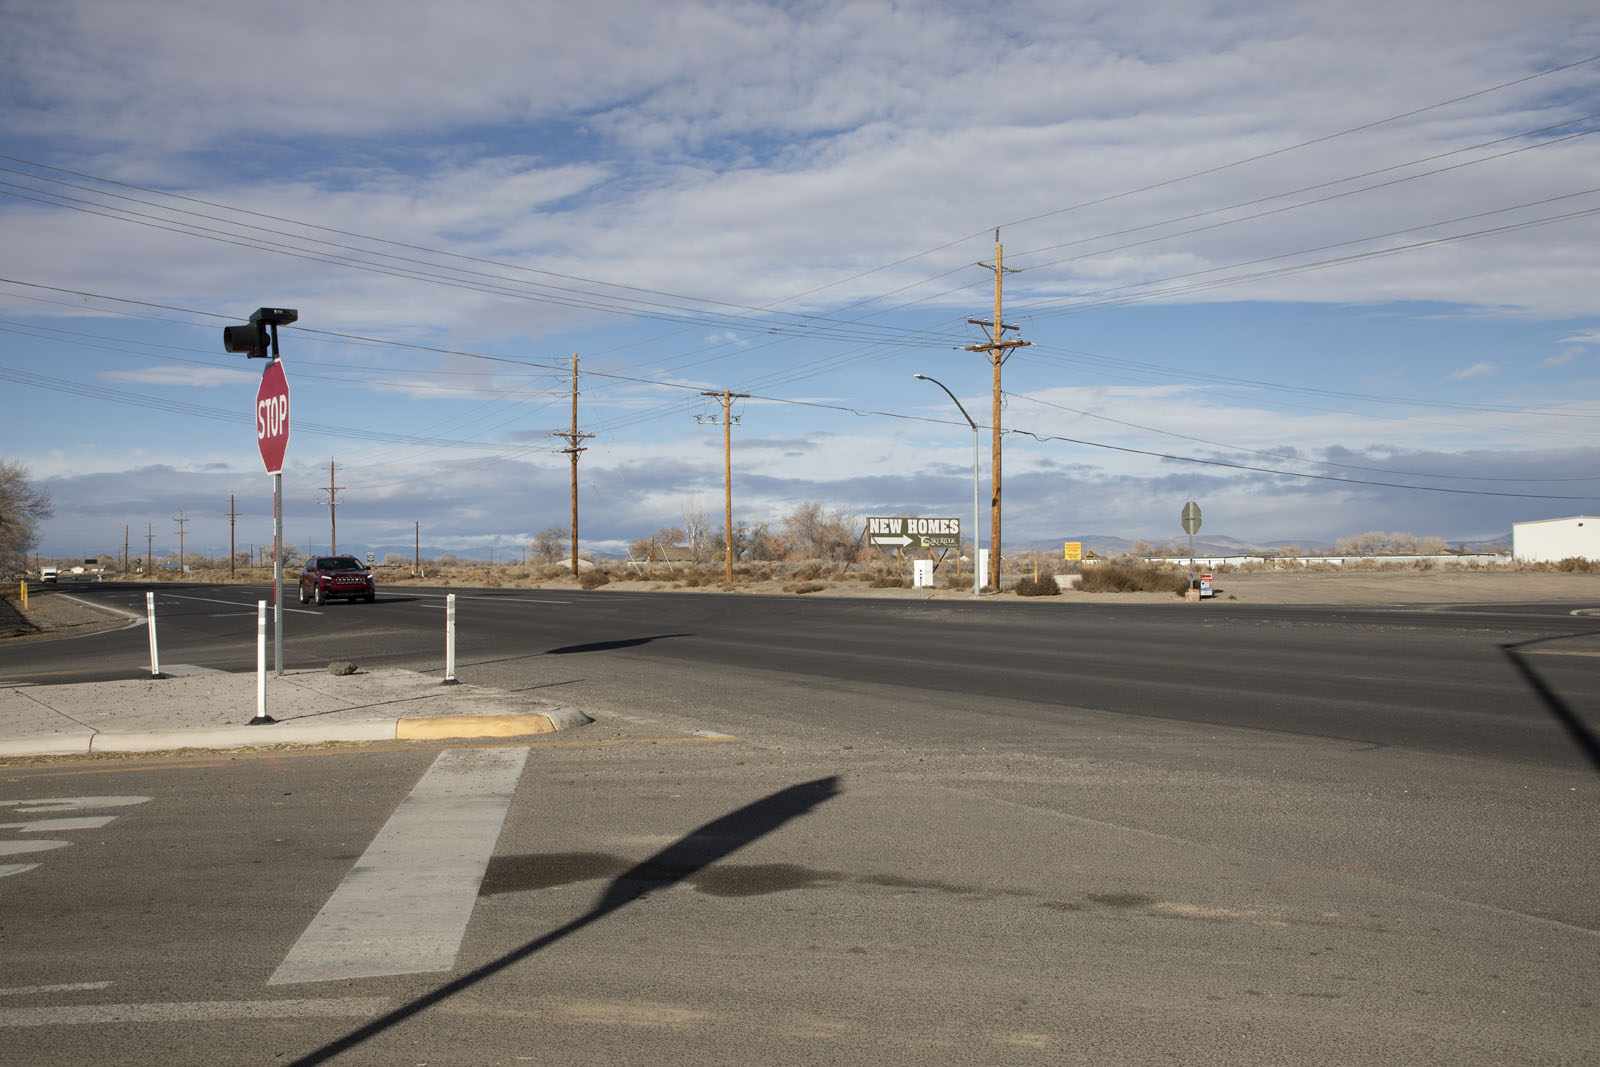 U.S. 50 and Sheckler Intersection in Fallon, NV